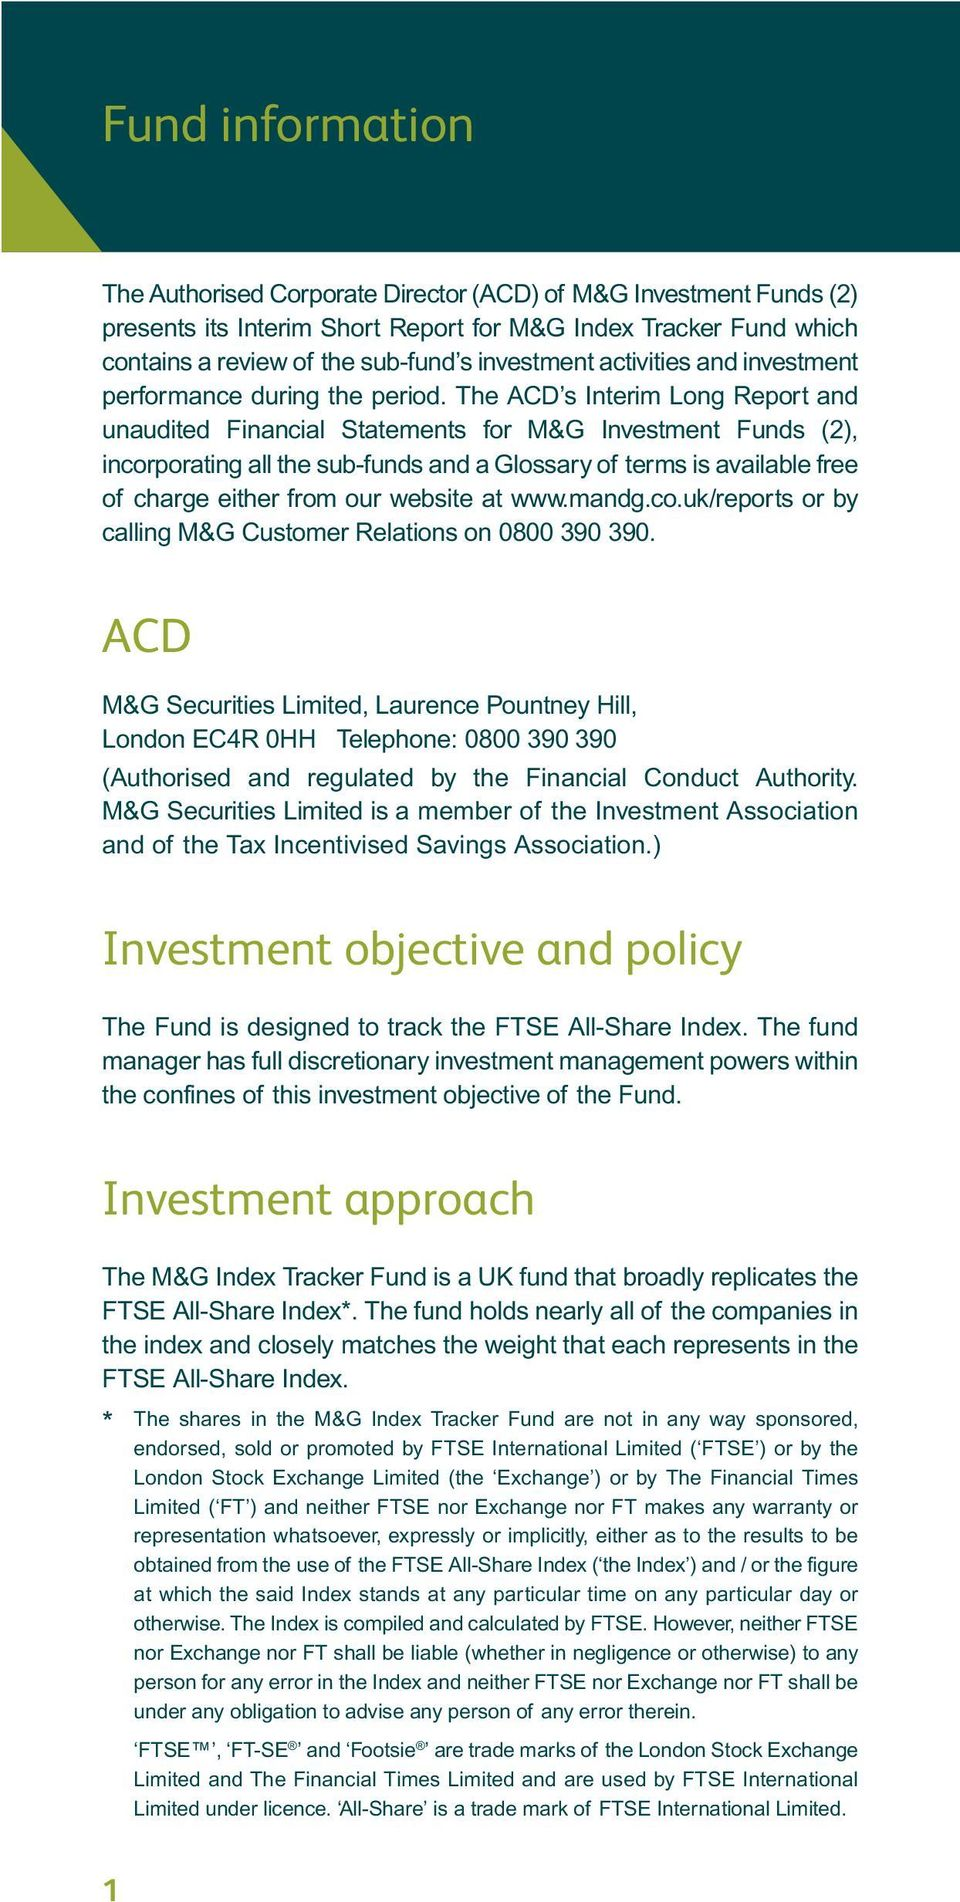 The ACD s Interim Long Report and unaudited Financial Statements for M&G Investment Funds (2), incorporating all the sub-funds and a Glossary of terms is available free of charge either from our